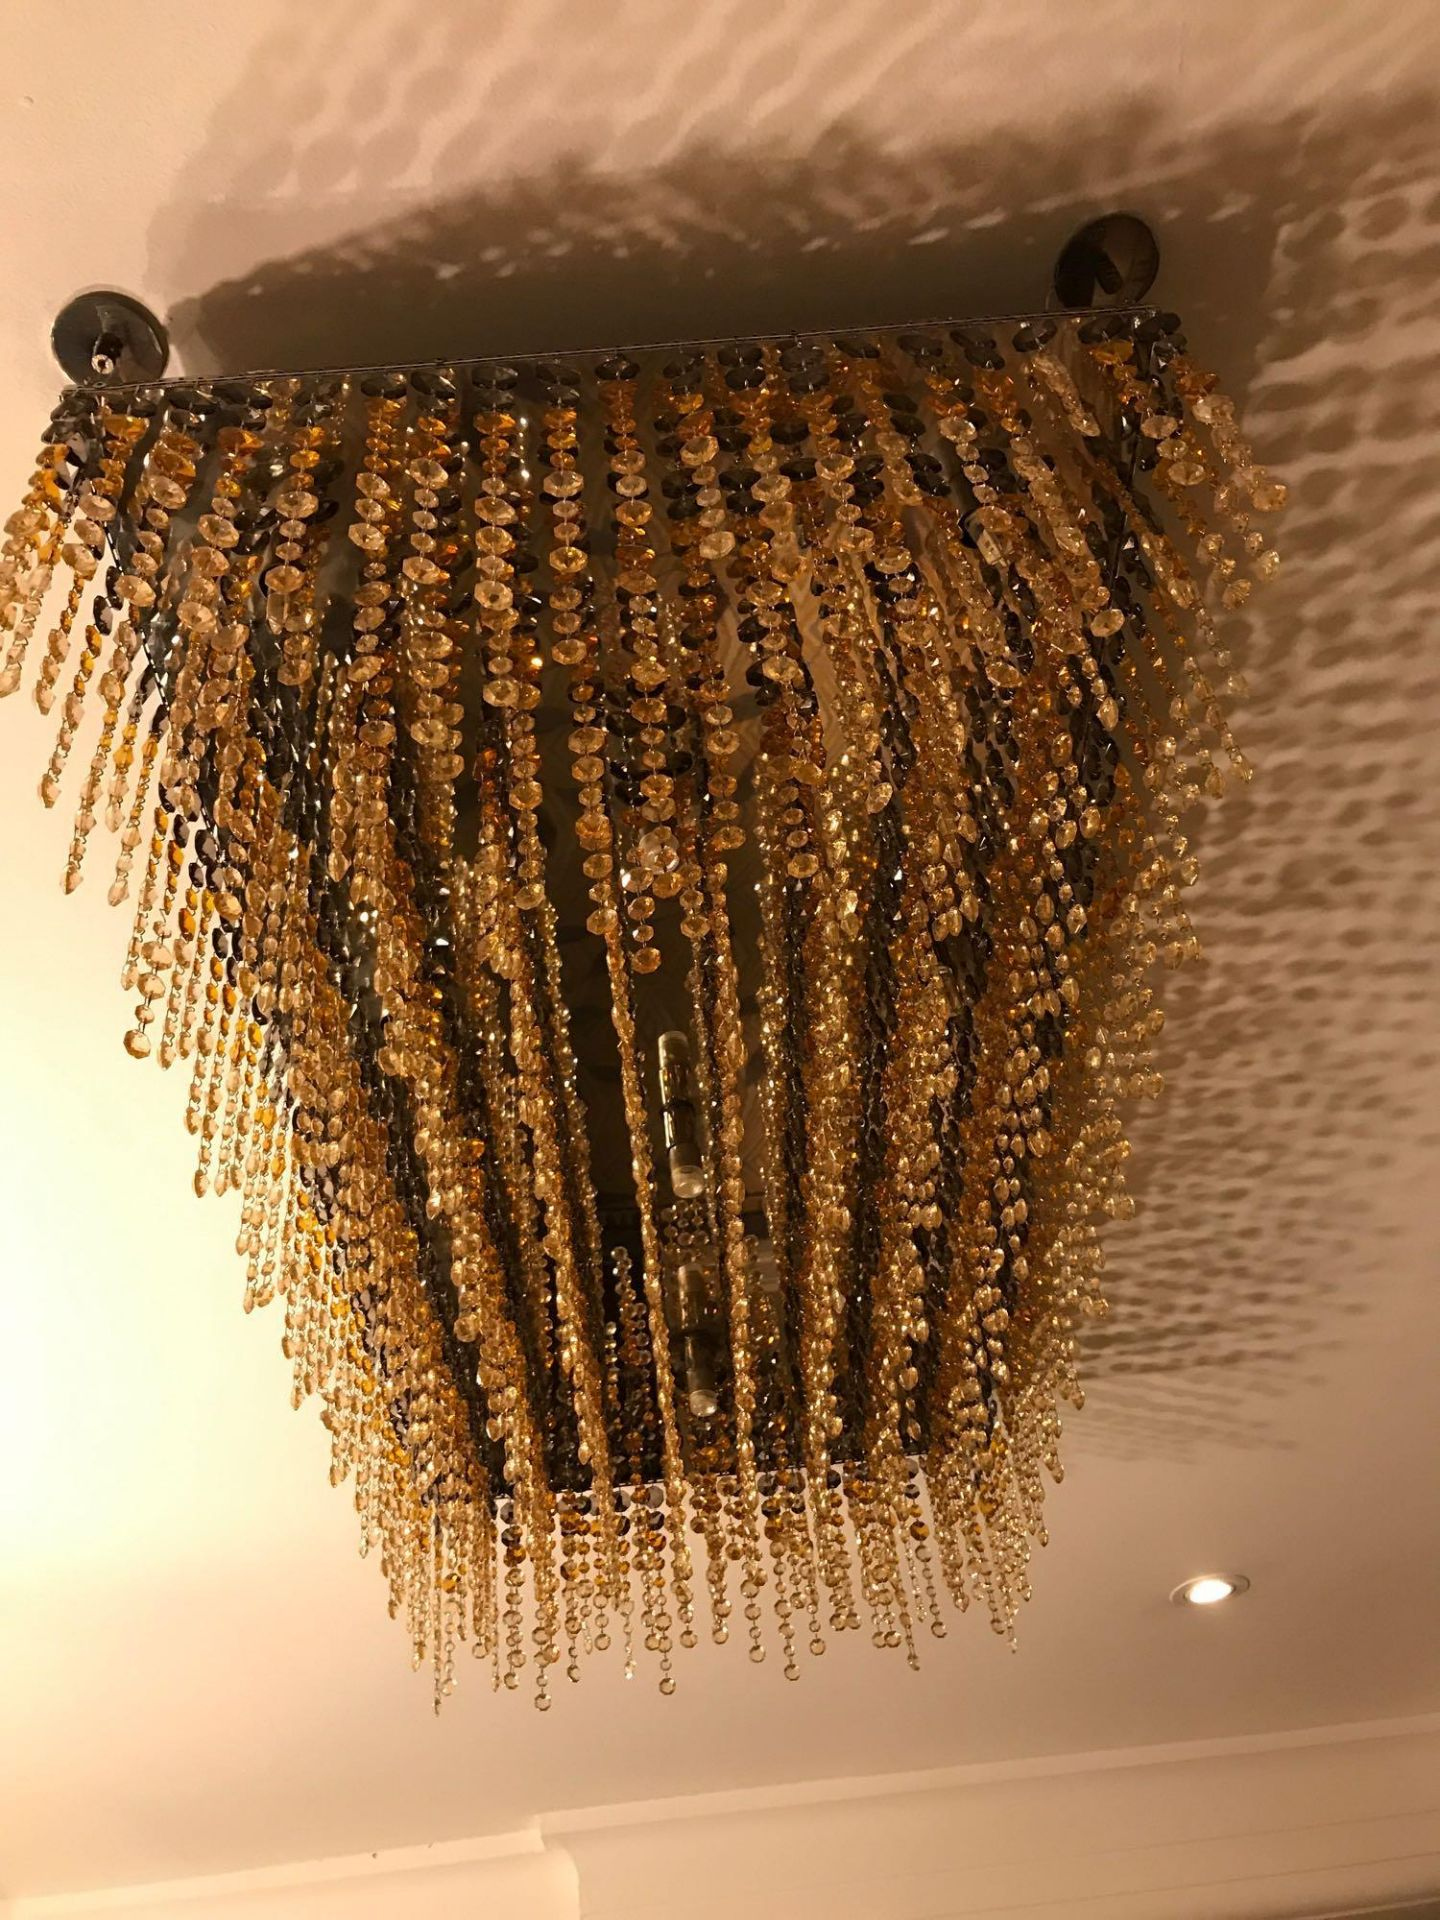 Rectangular Ceiling Pendant Crystal Linear Pendants Rectangular Linear LED Ceiling Light Pendant - Image 2 of 2